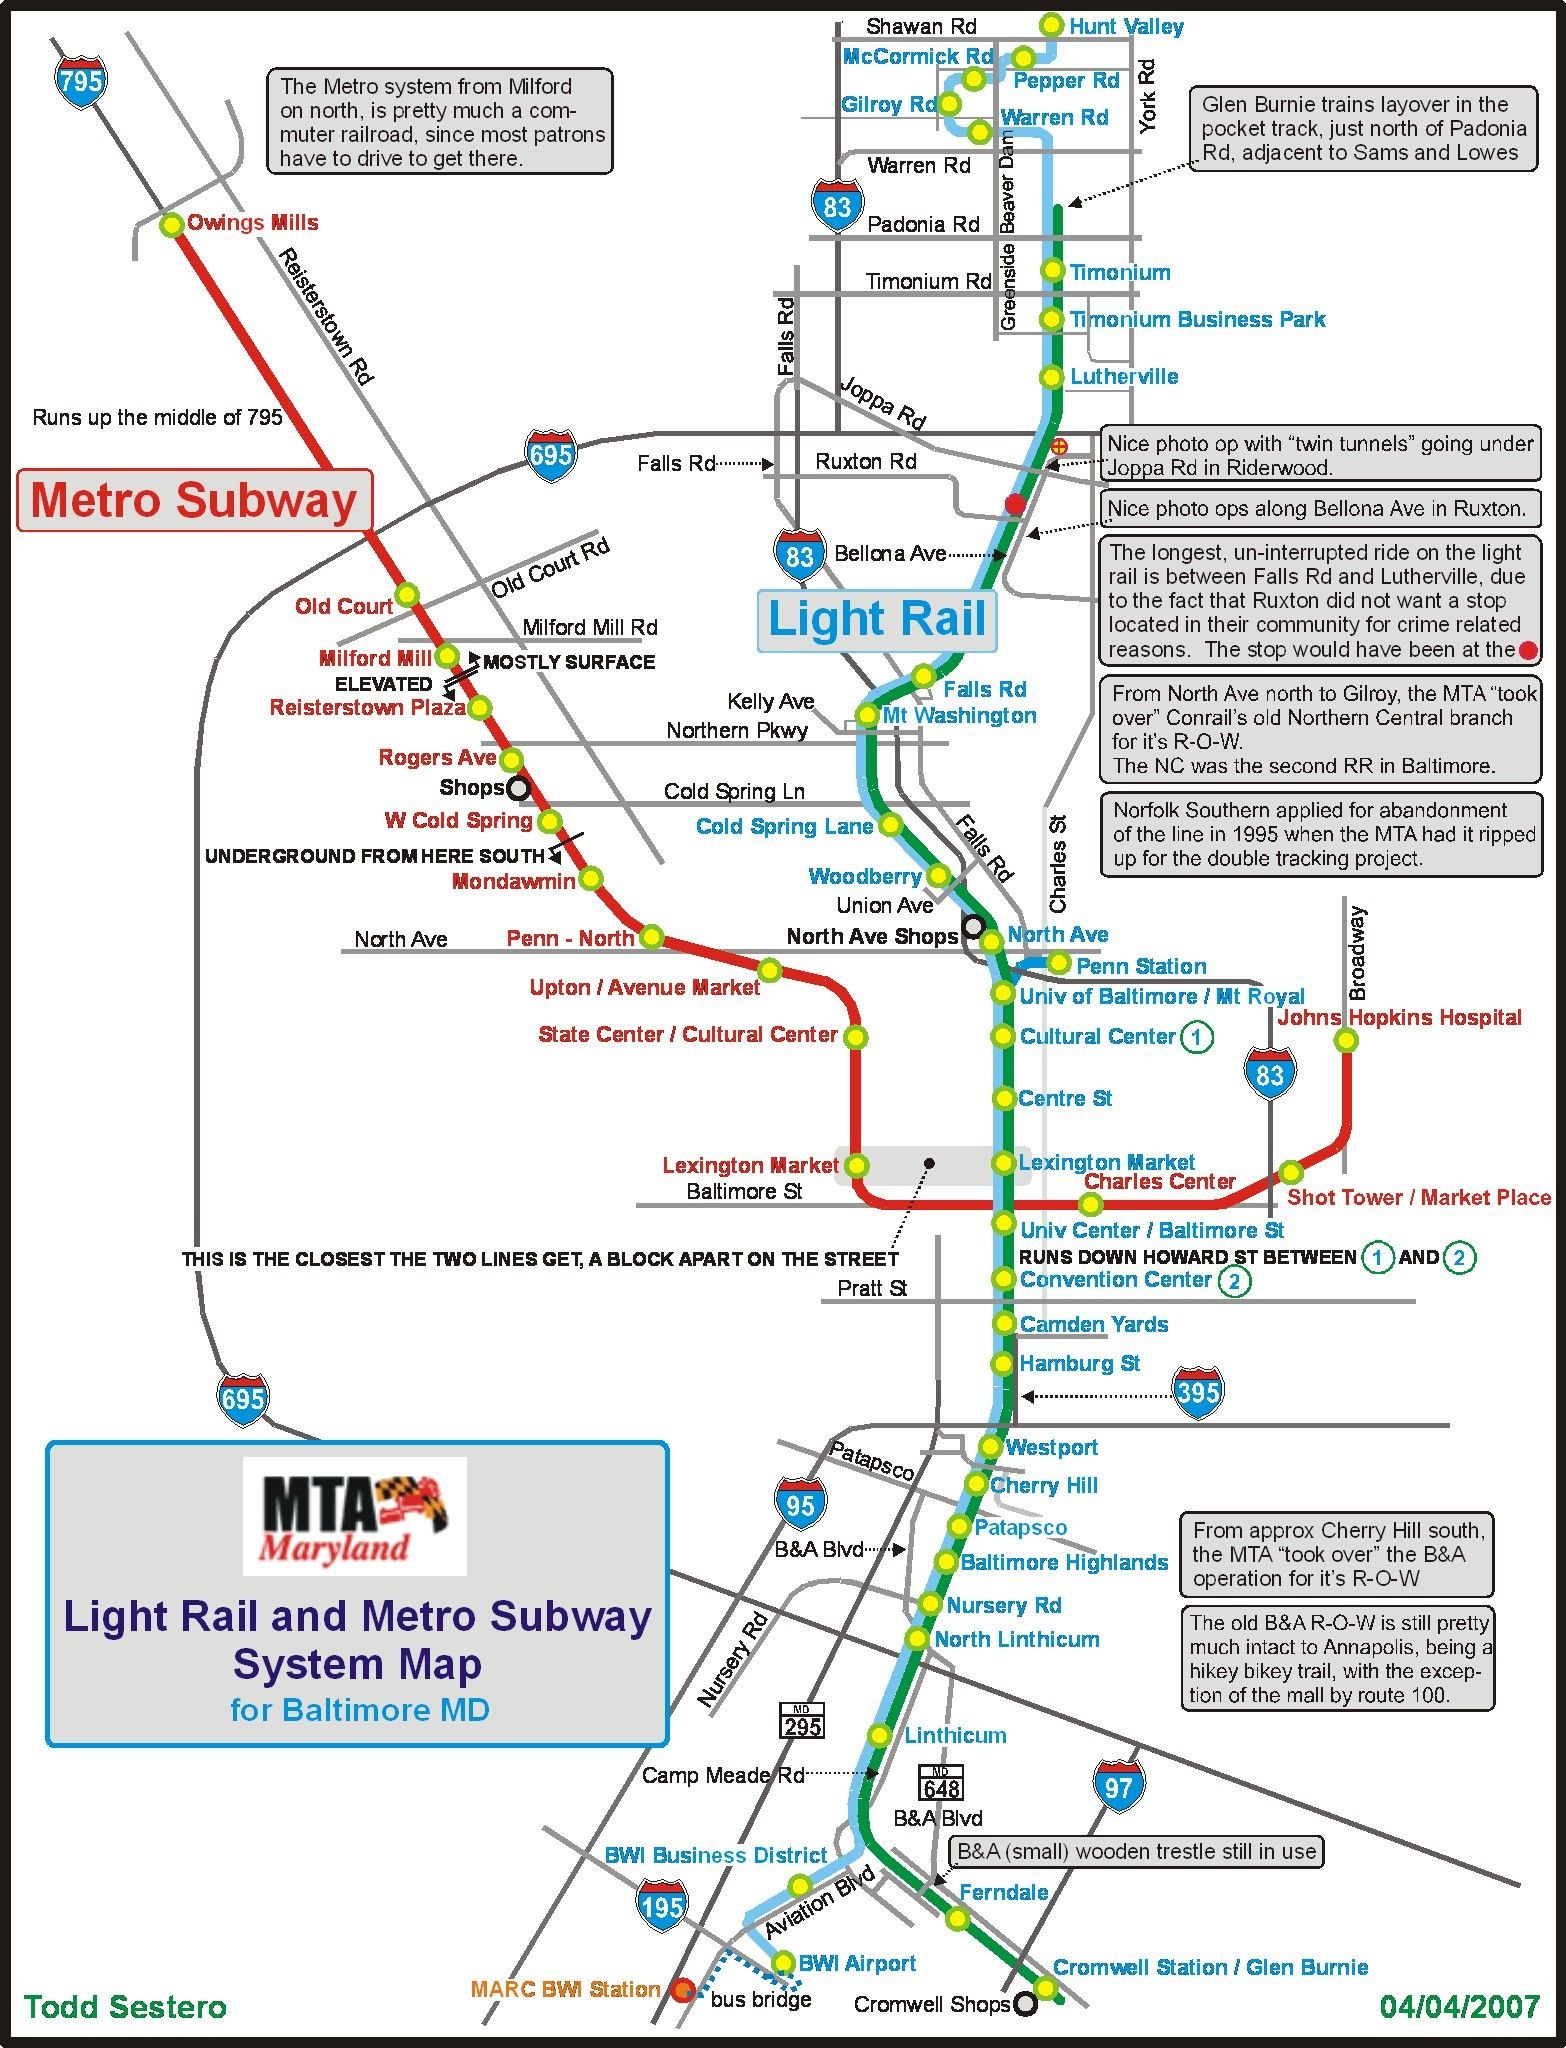 The Baltimore Metro Subway system hereafter called the Baltimore